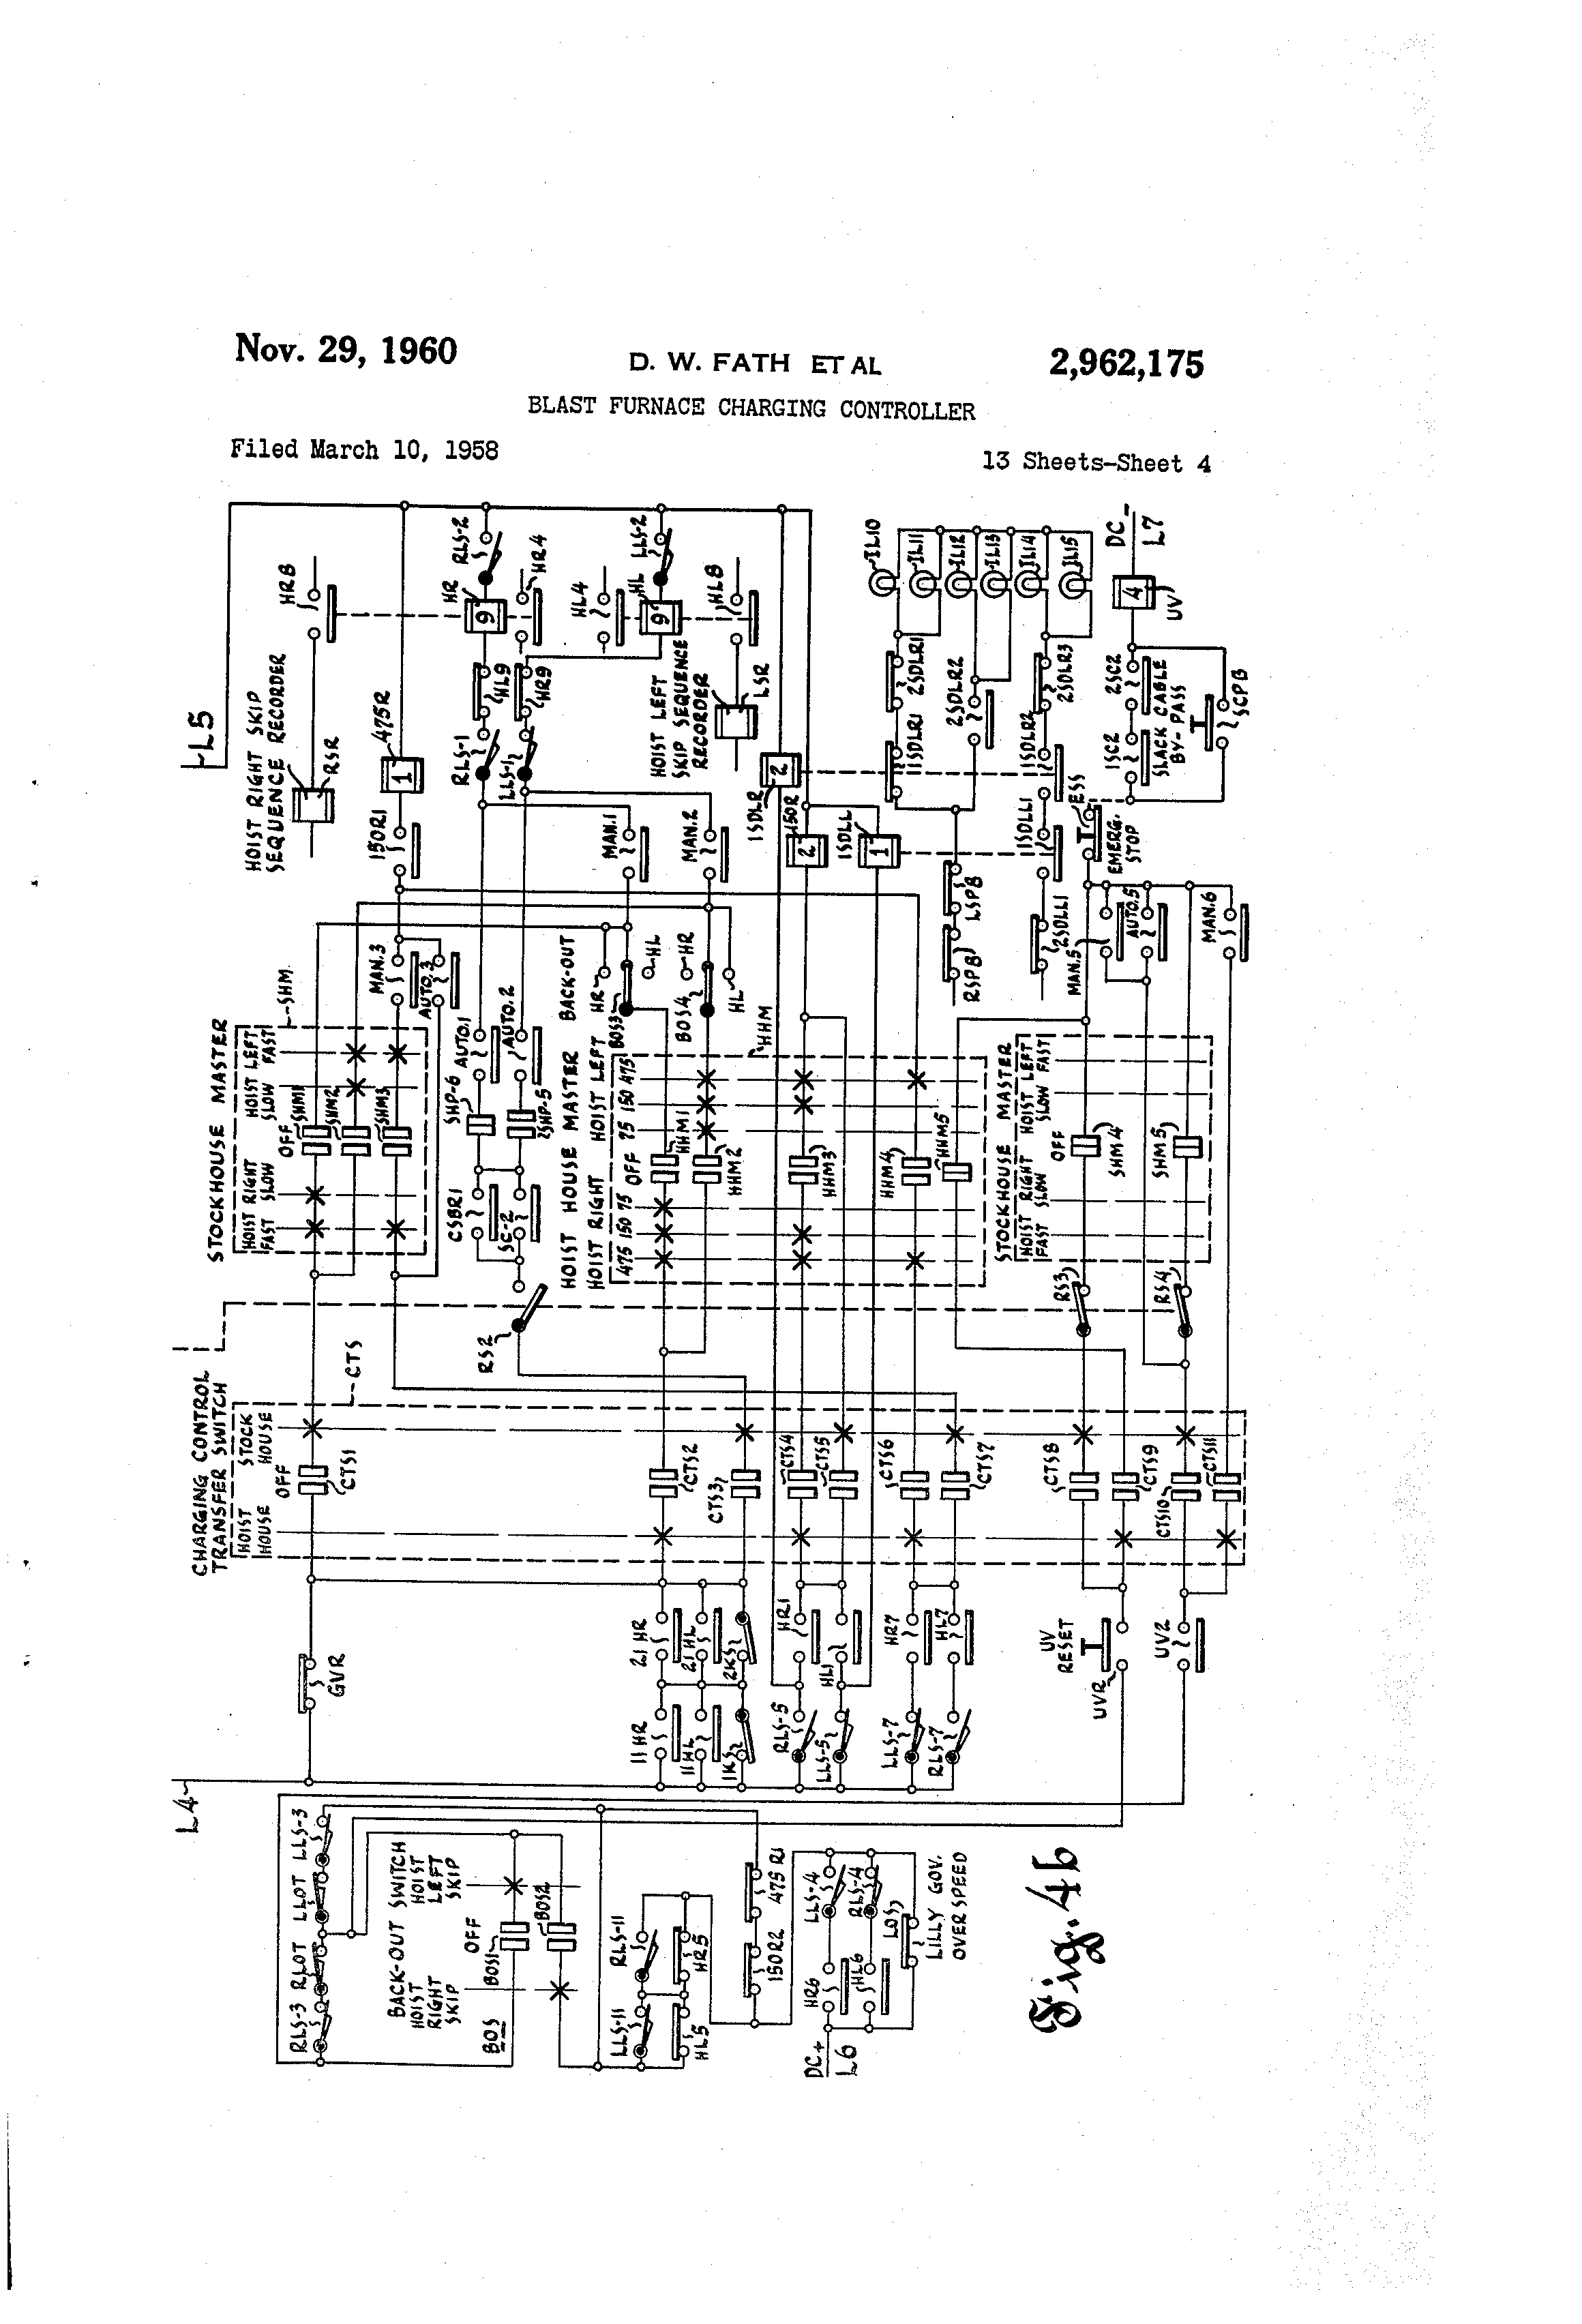 Wiring Diagram Triumph Spitfire Mk1 1965 Libraries 2001 Pontiac Bonneville Sle Fuse Box 67 Gt6 Library